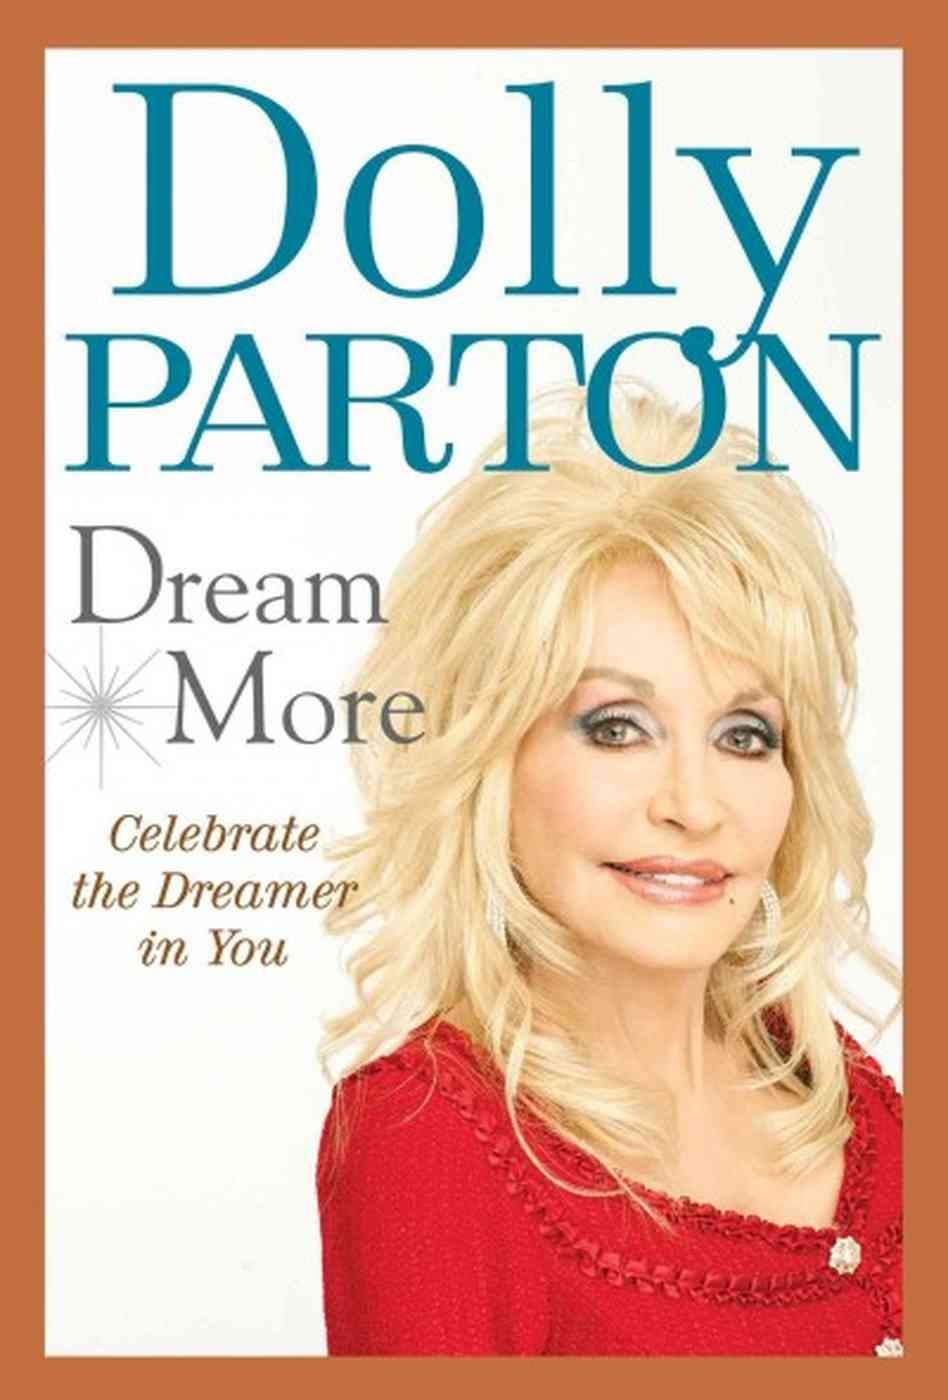 dolly parton book cover